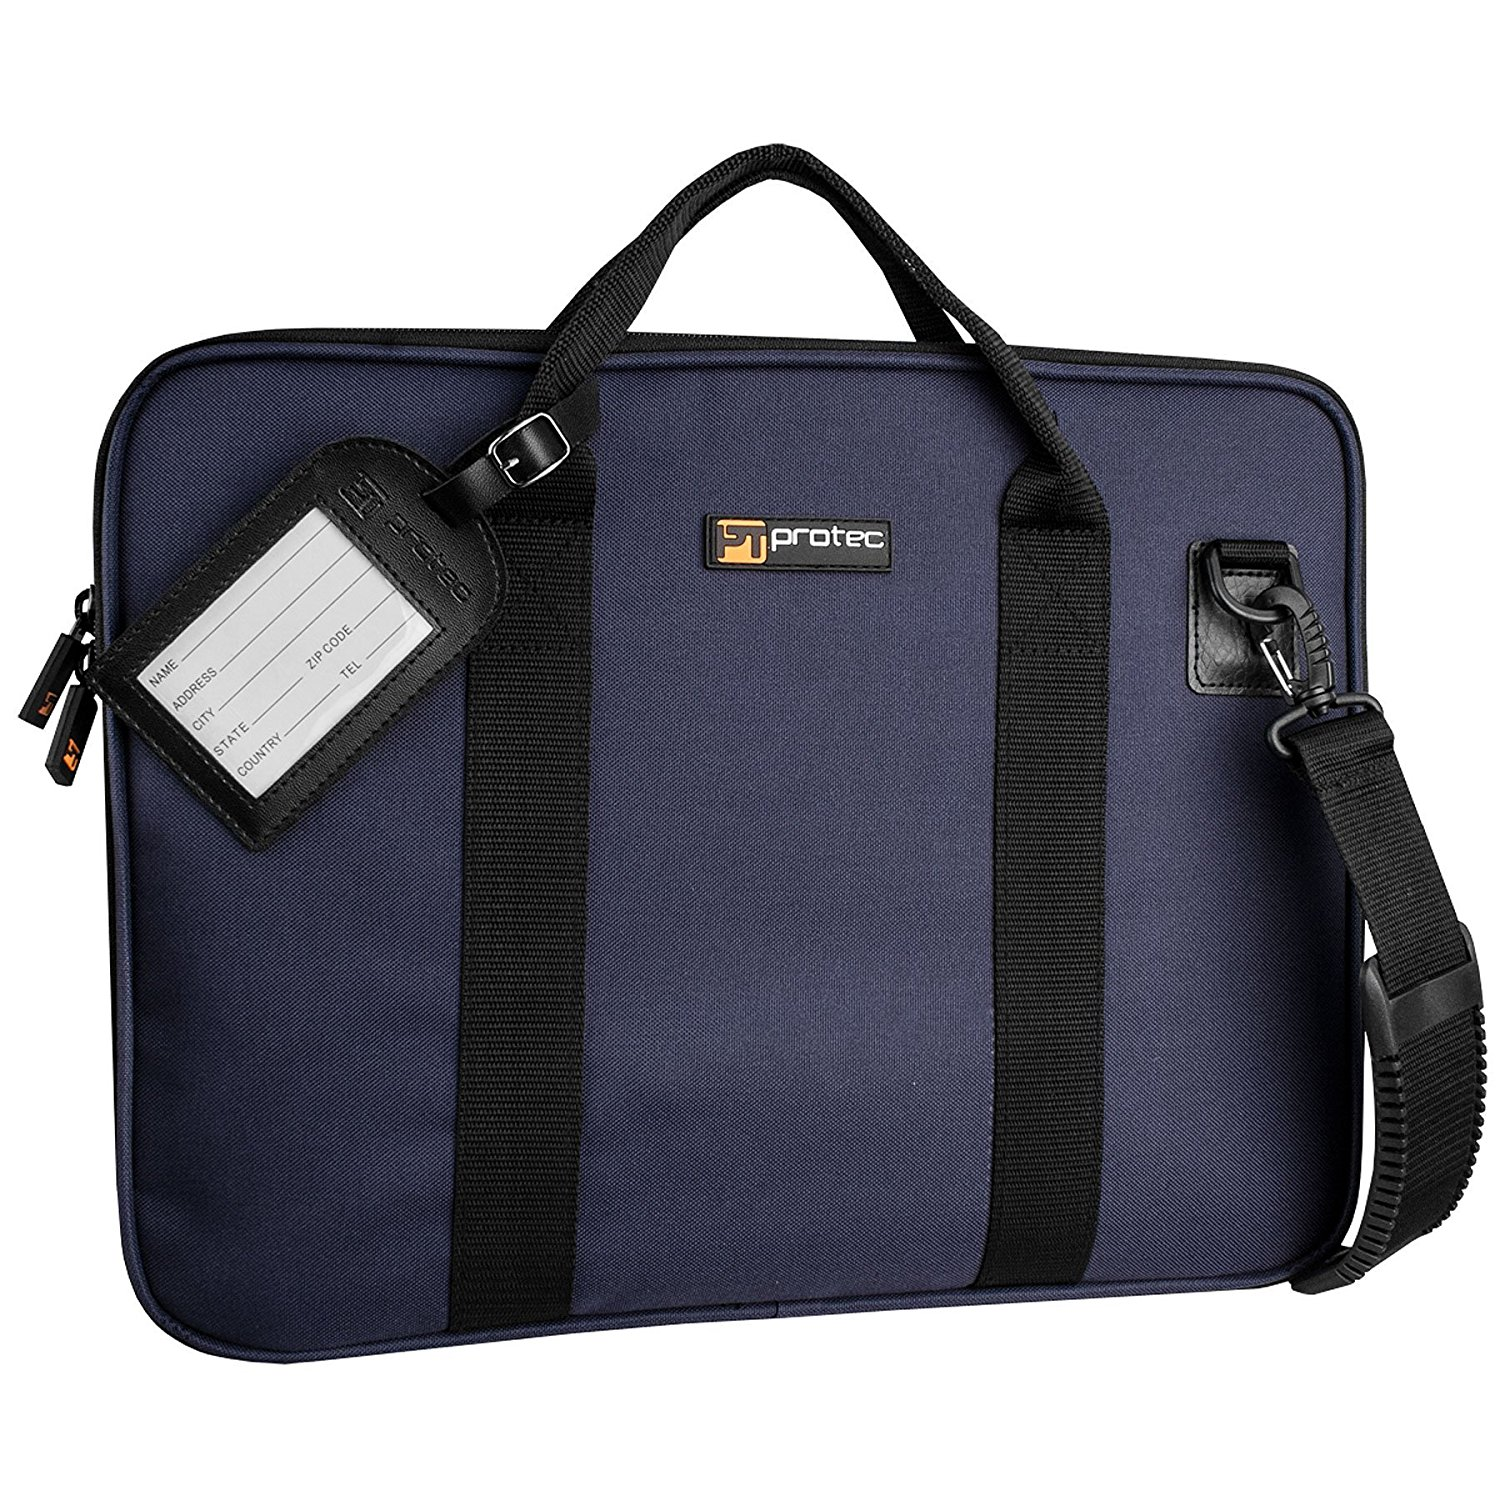 Music Portfolio Bag - Blue, 3 interior pockets for sheet music By ProTec Ship from US